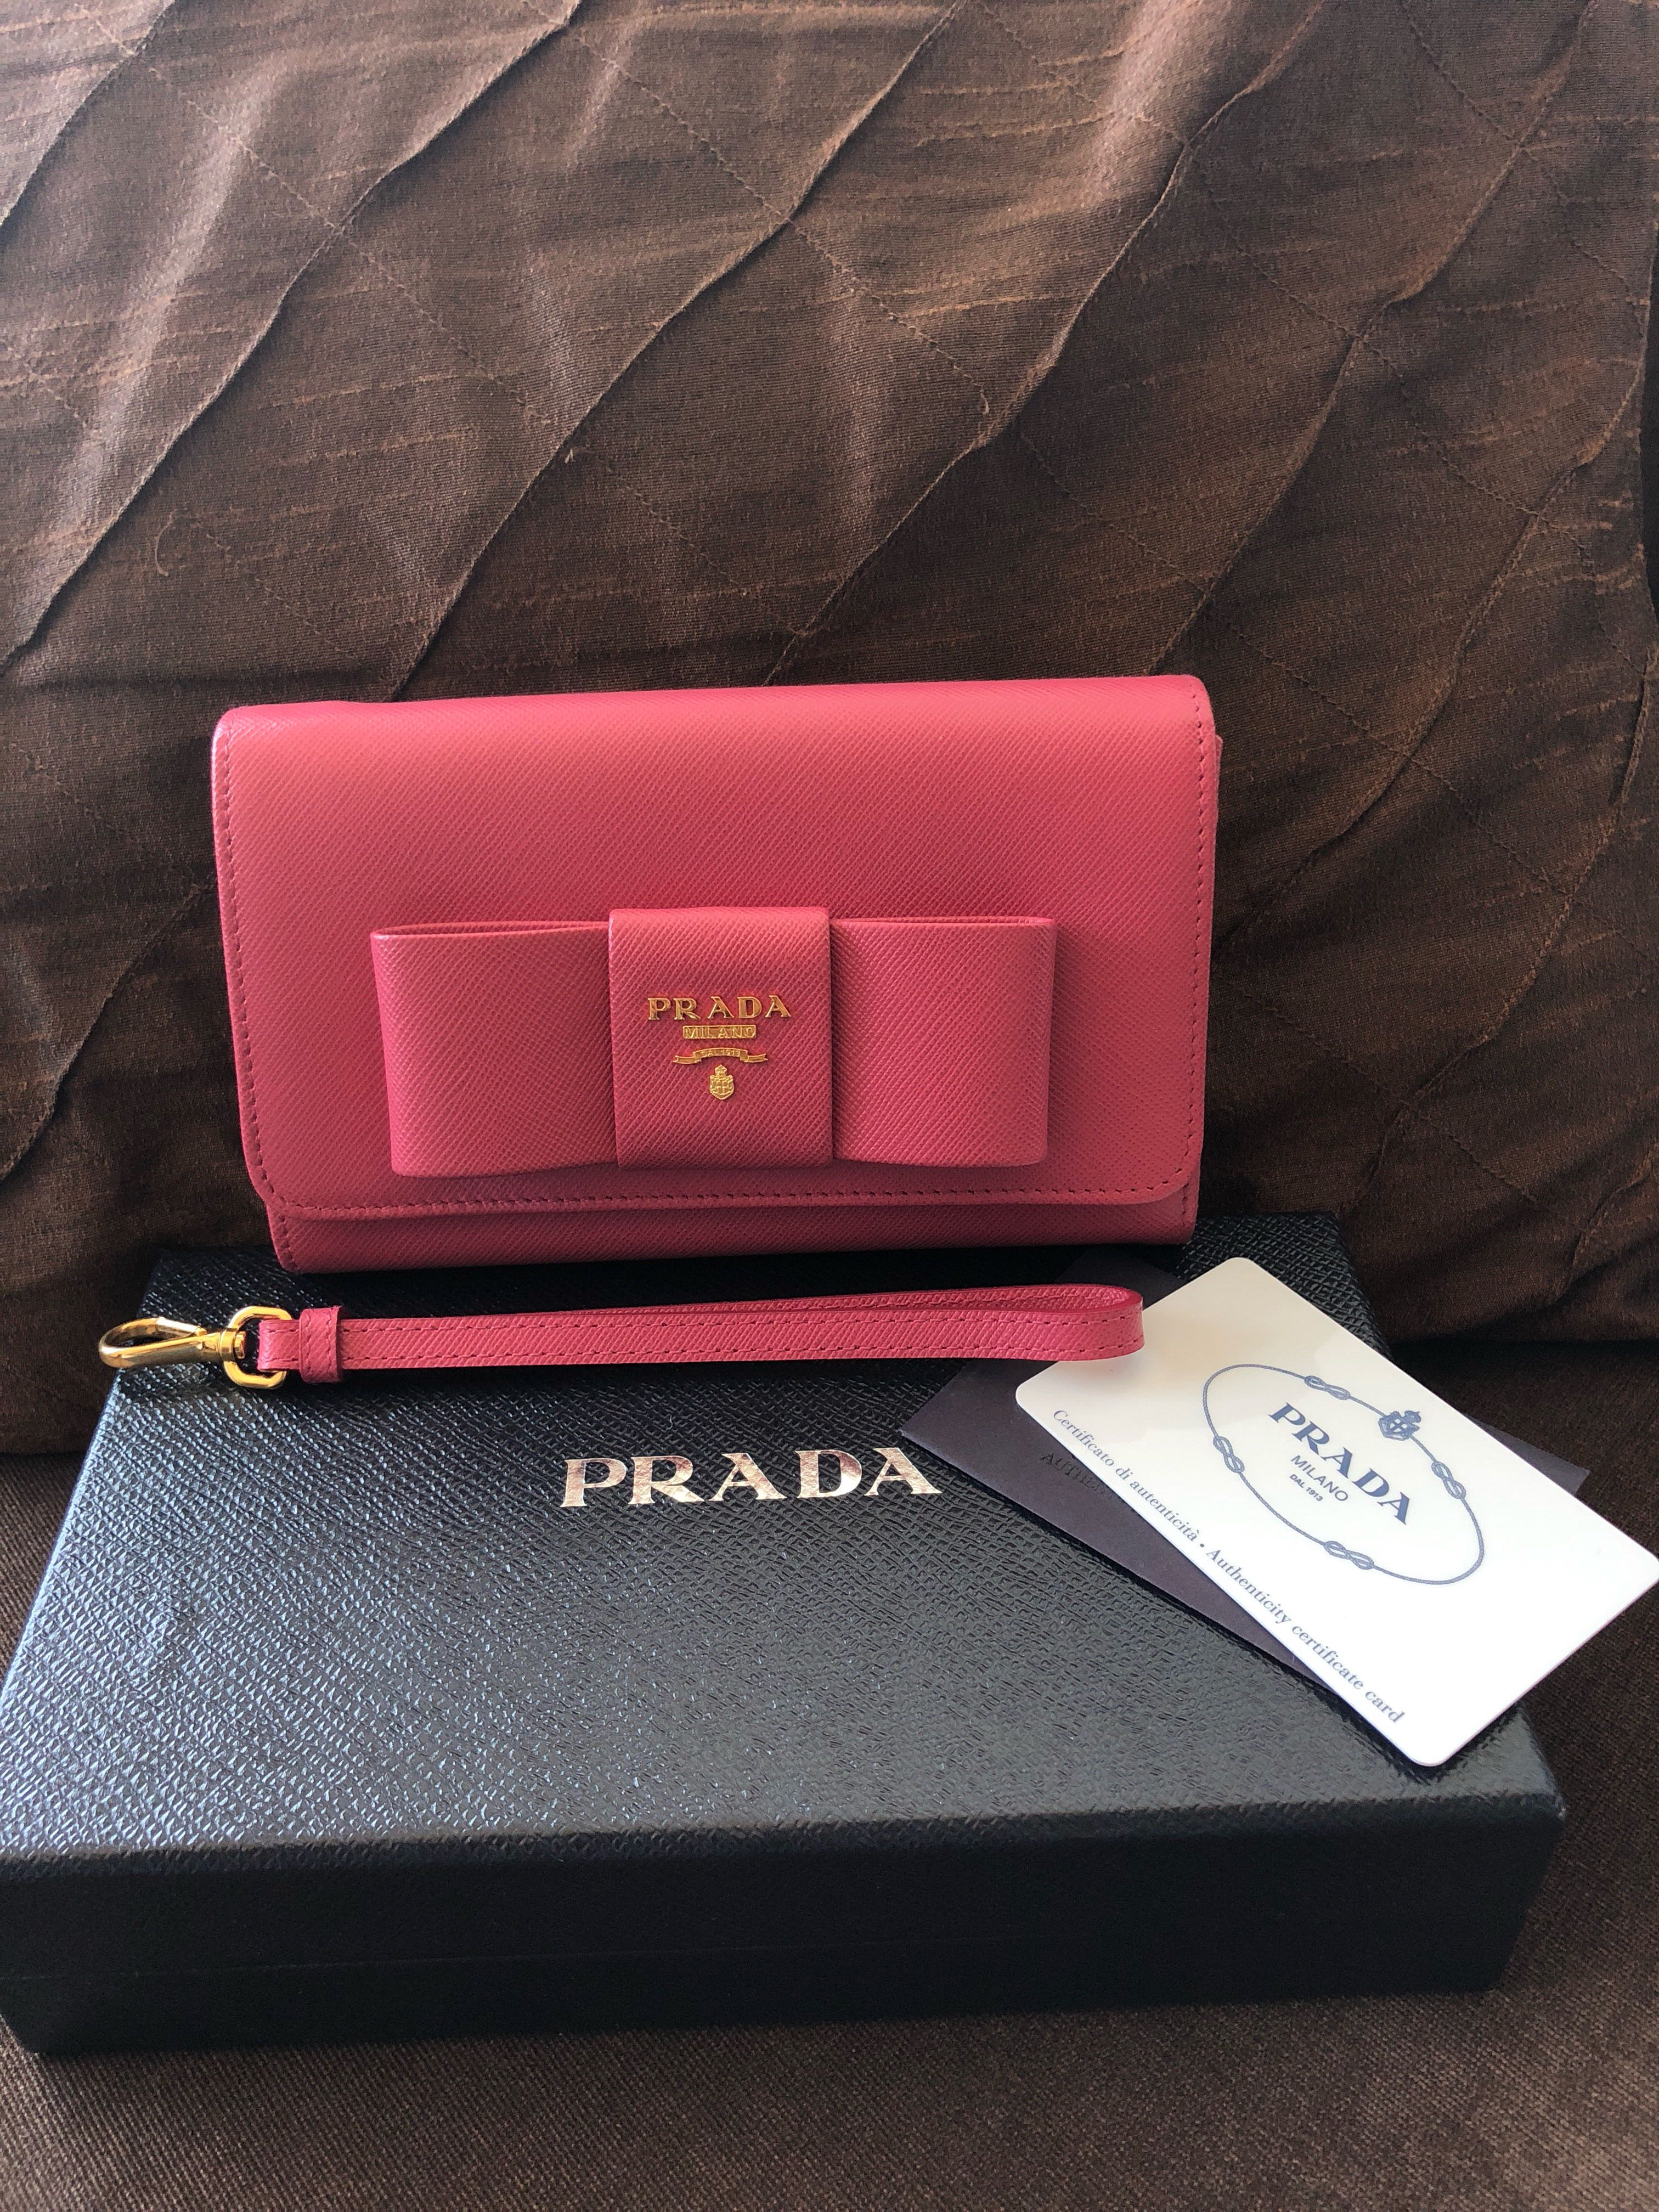 7f91d27e1a4f Prada Saffiano Peonia-coloured wallet, Luxury, Bags & Wallets ...